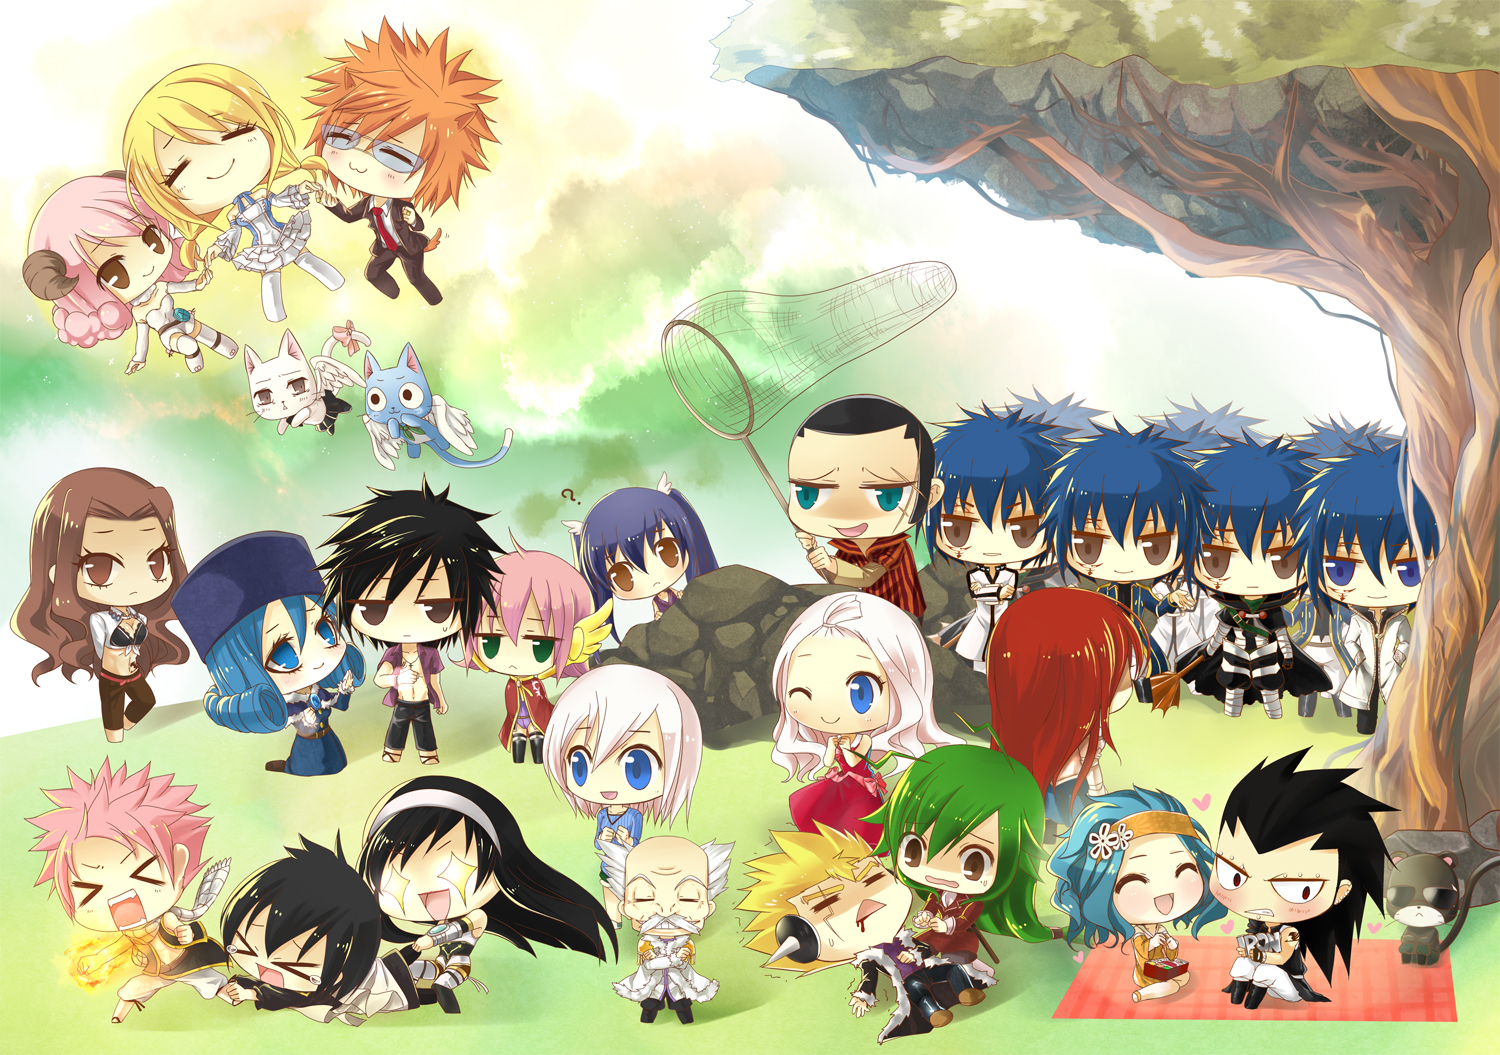 Anime Chibi Fairy Tail 5